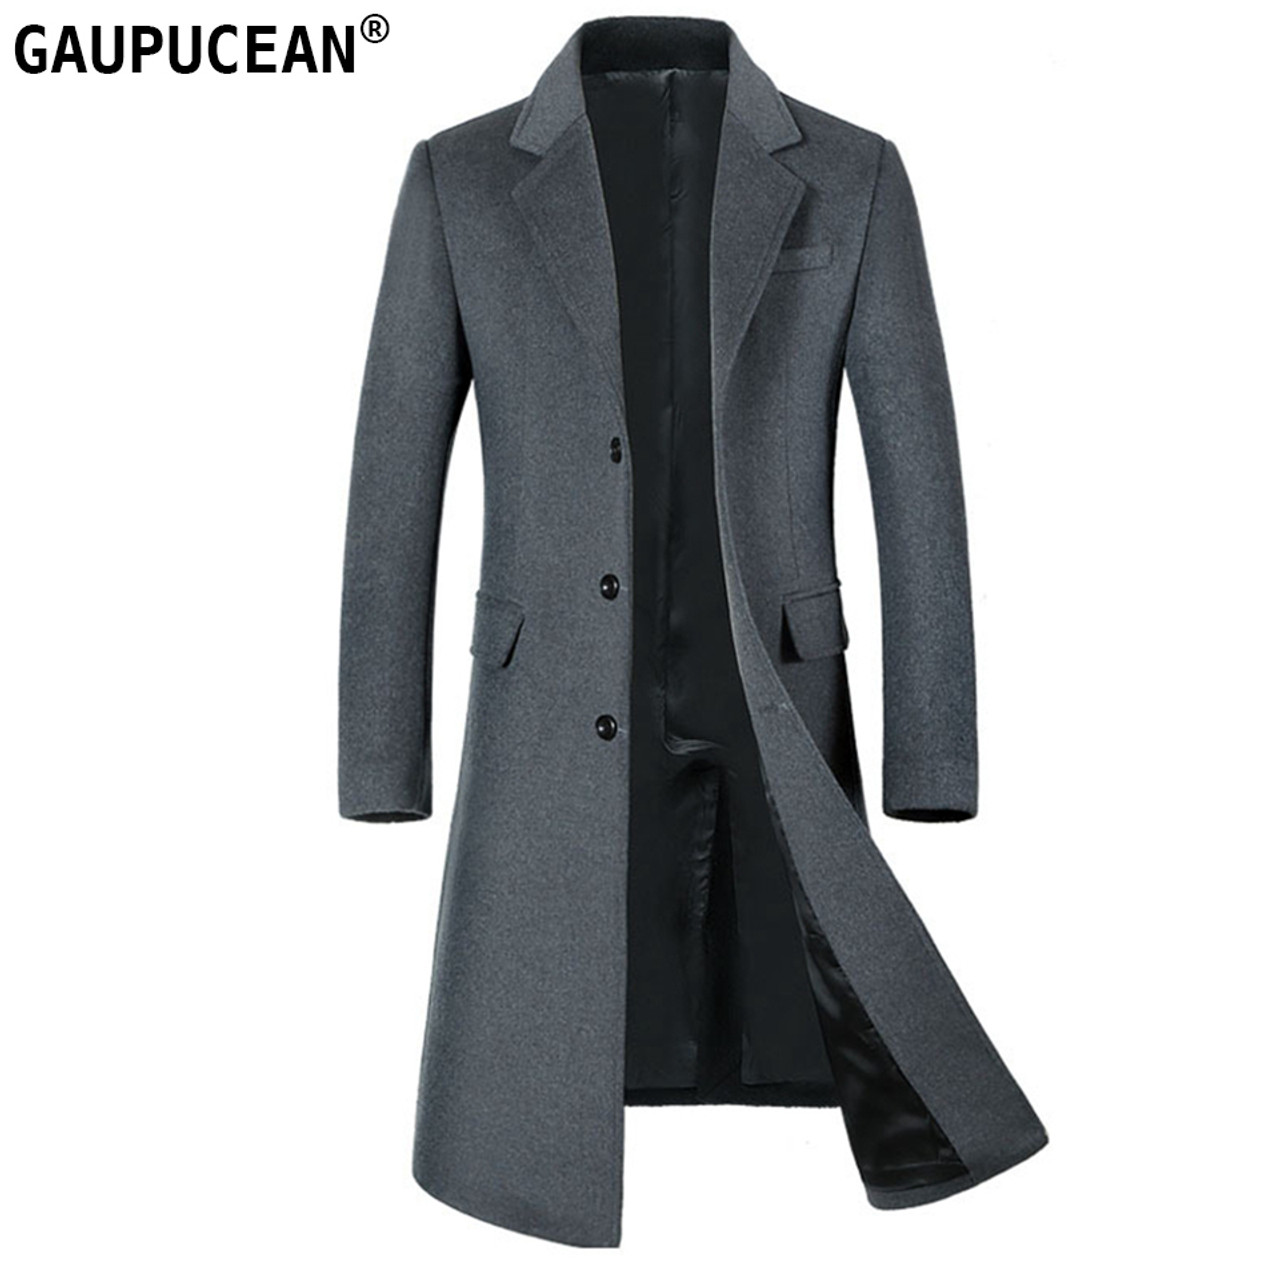 908833f83 Man Wool Jacket Extra Long High Quality Formal Business Grey Single ...